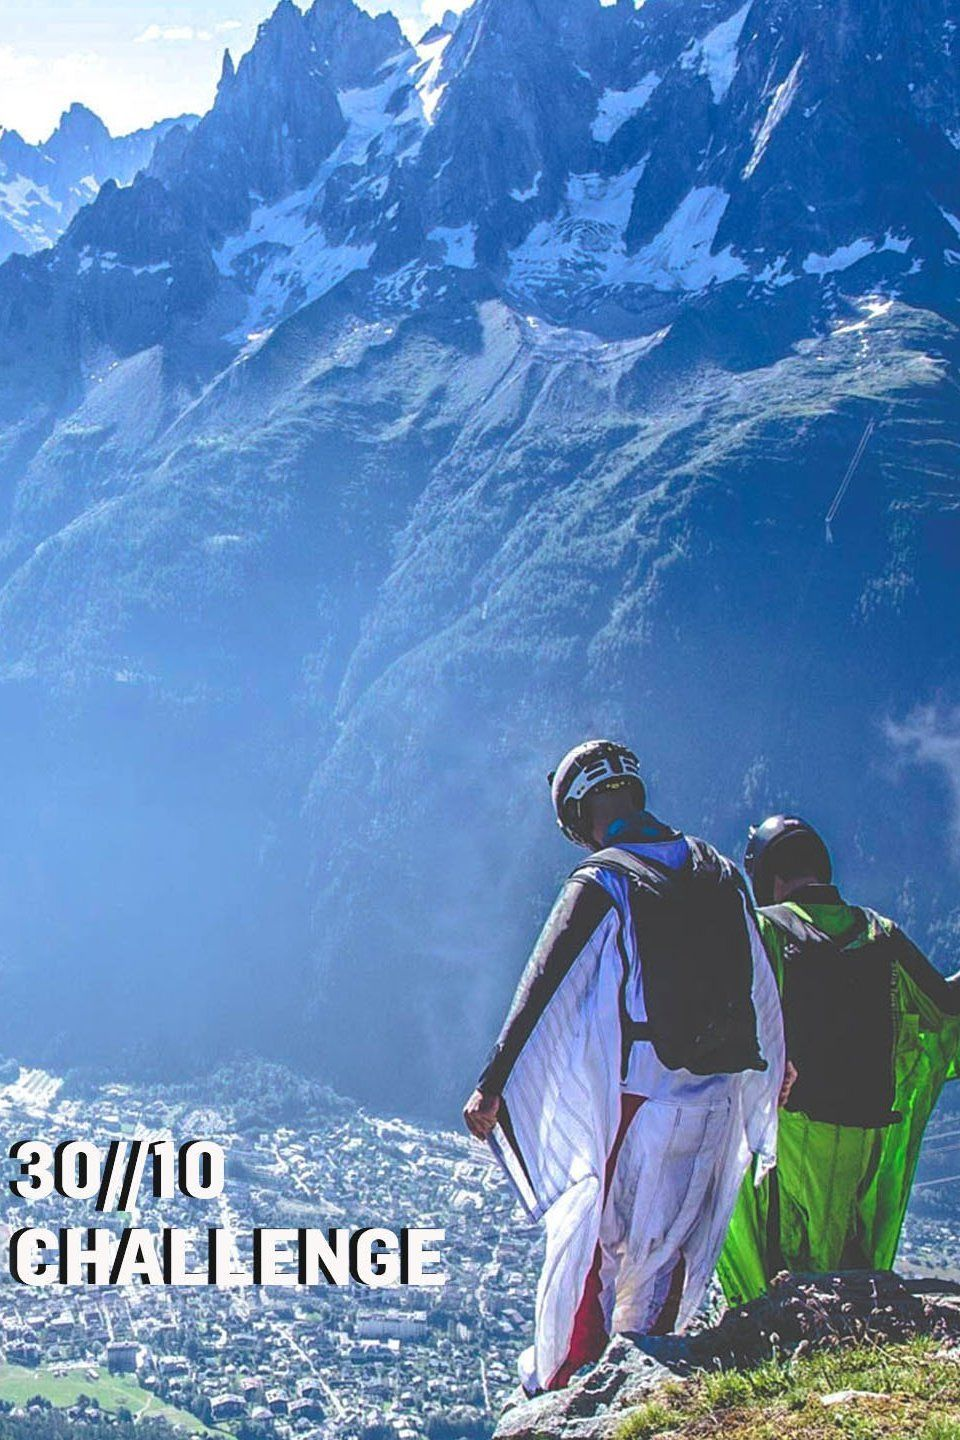 docu series wingsuit base chamonix